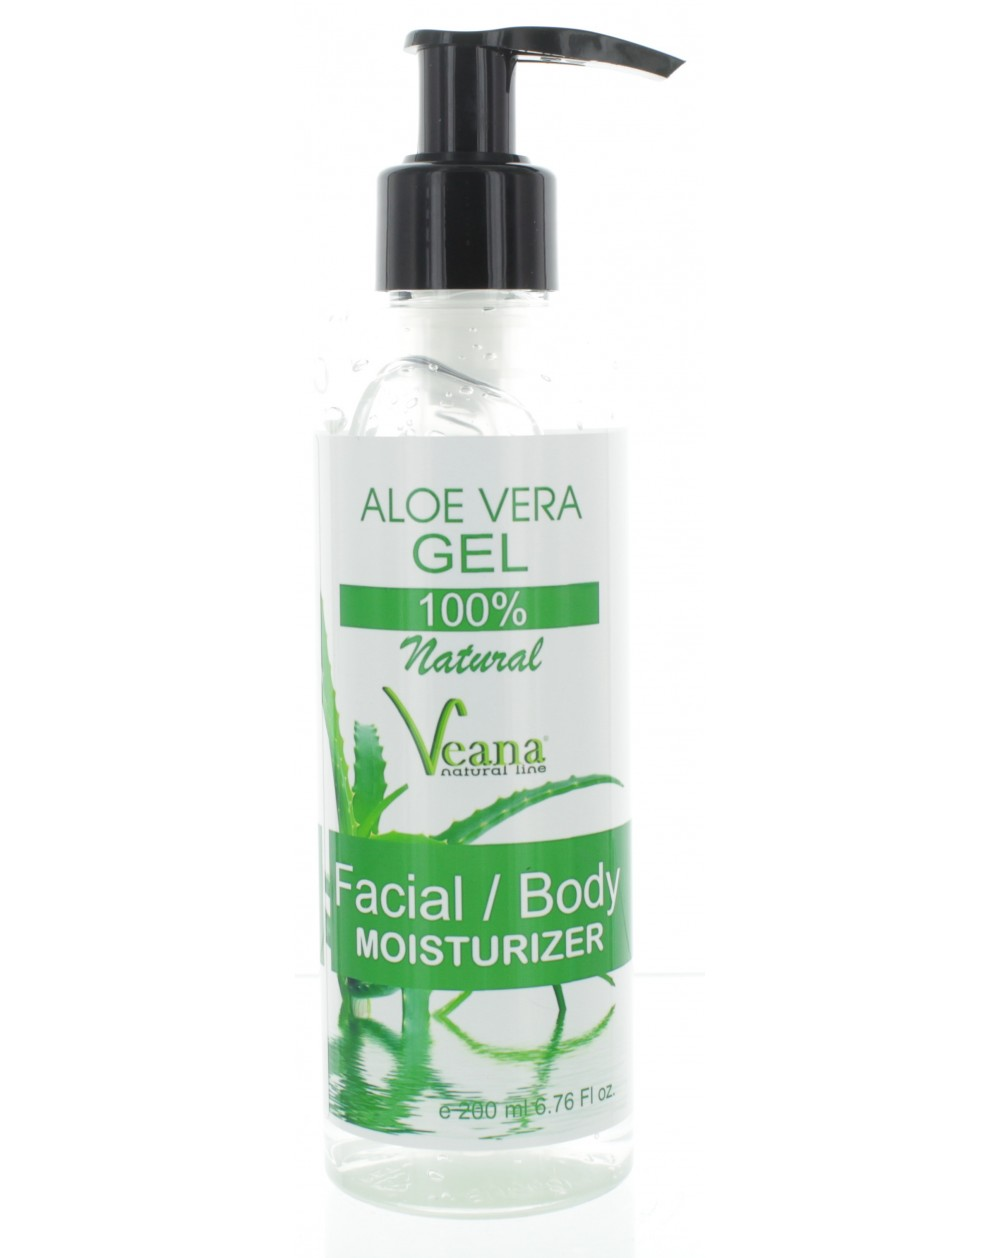 Aloe Vera Gel 100% natural (200ml)